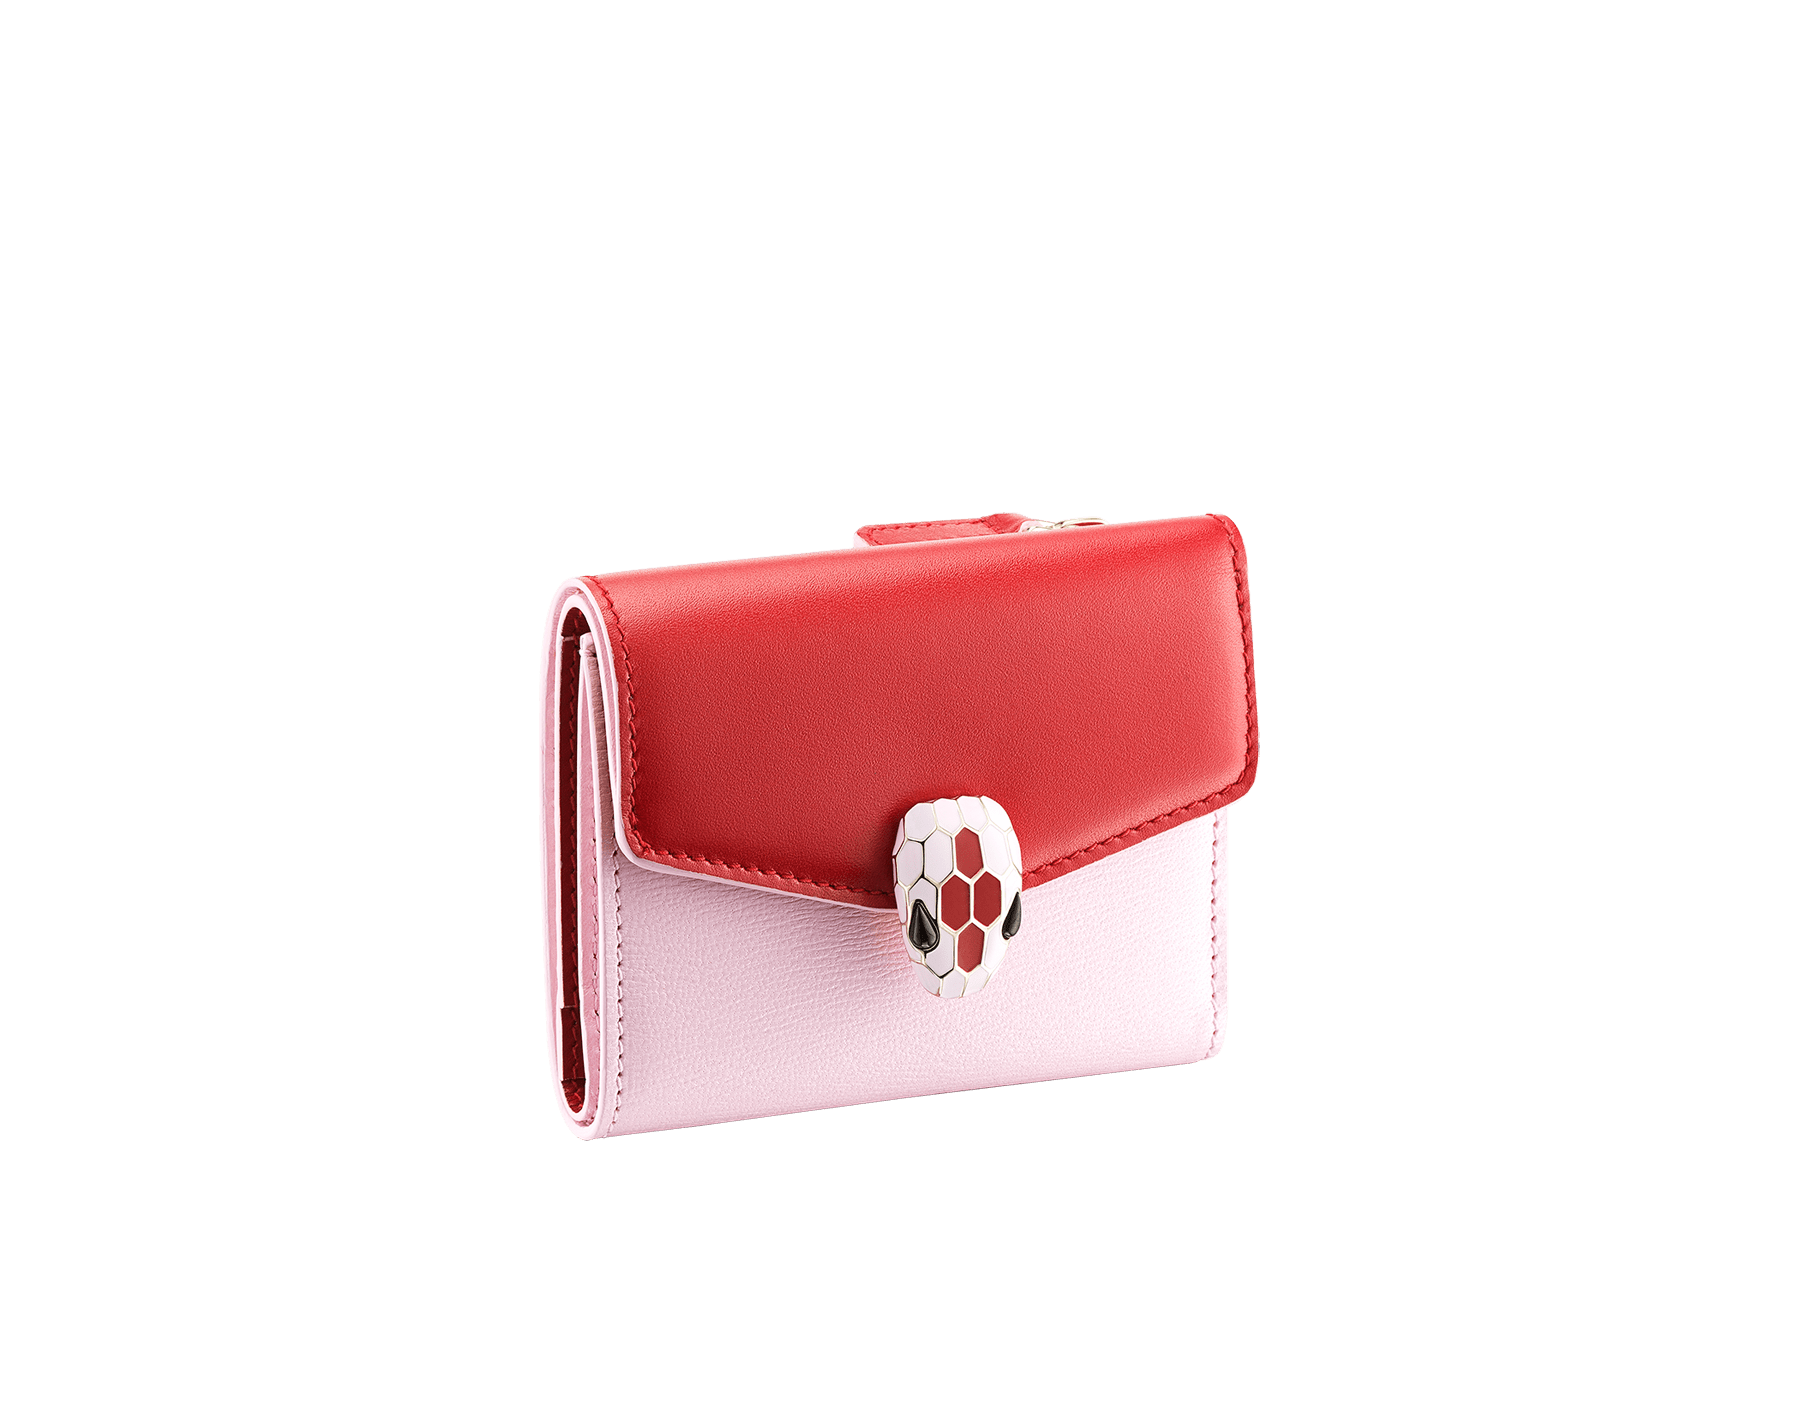 Serpenti Forever slim compact wallet in ruby red calf leather and rosa di francia goatskin. Iconic snakehead stud closure in rosa di francia and ruby red enamel, with black onyx eyes. 289203 image 1